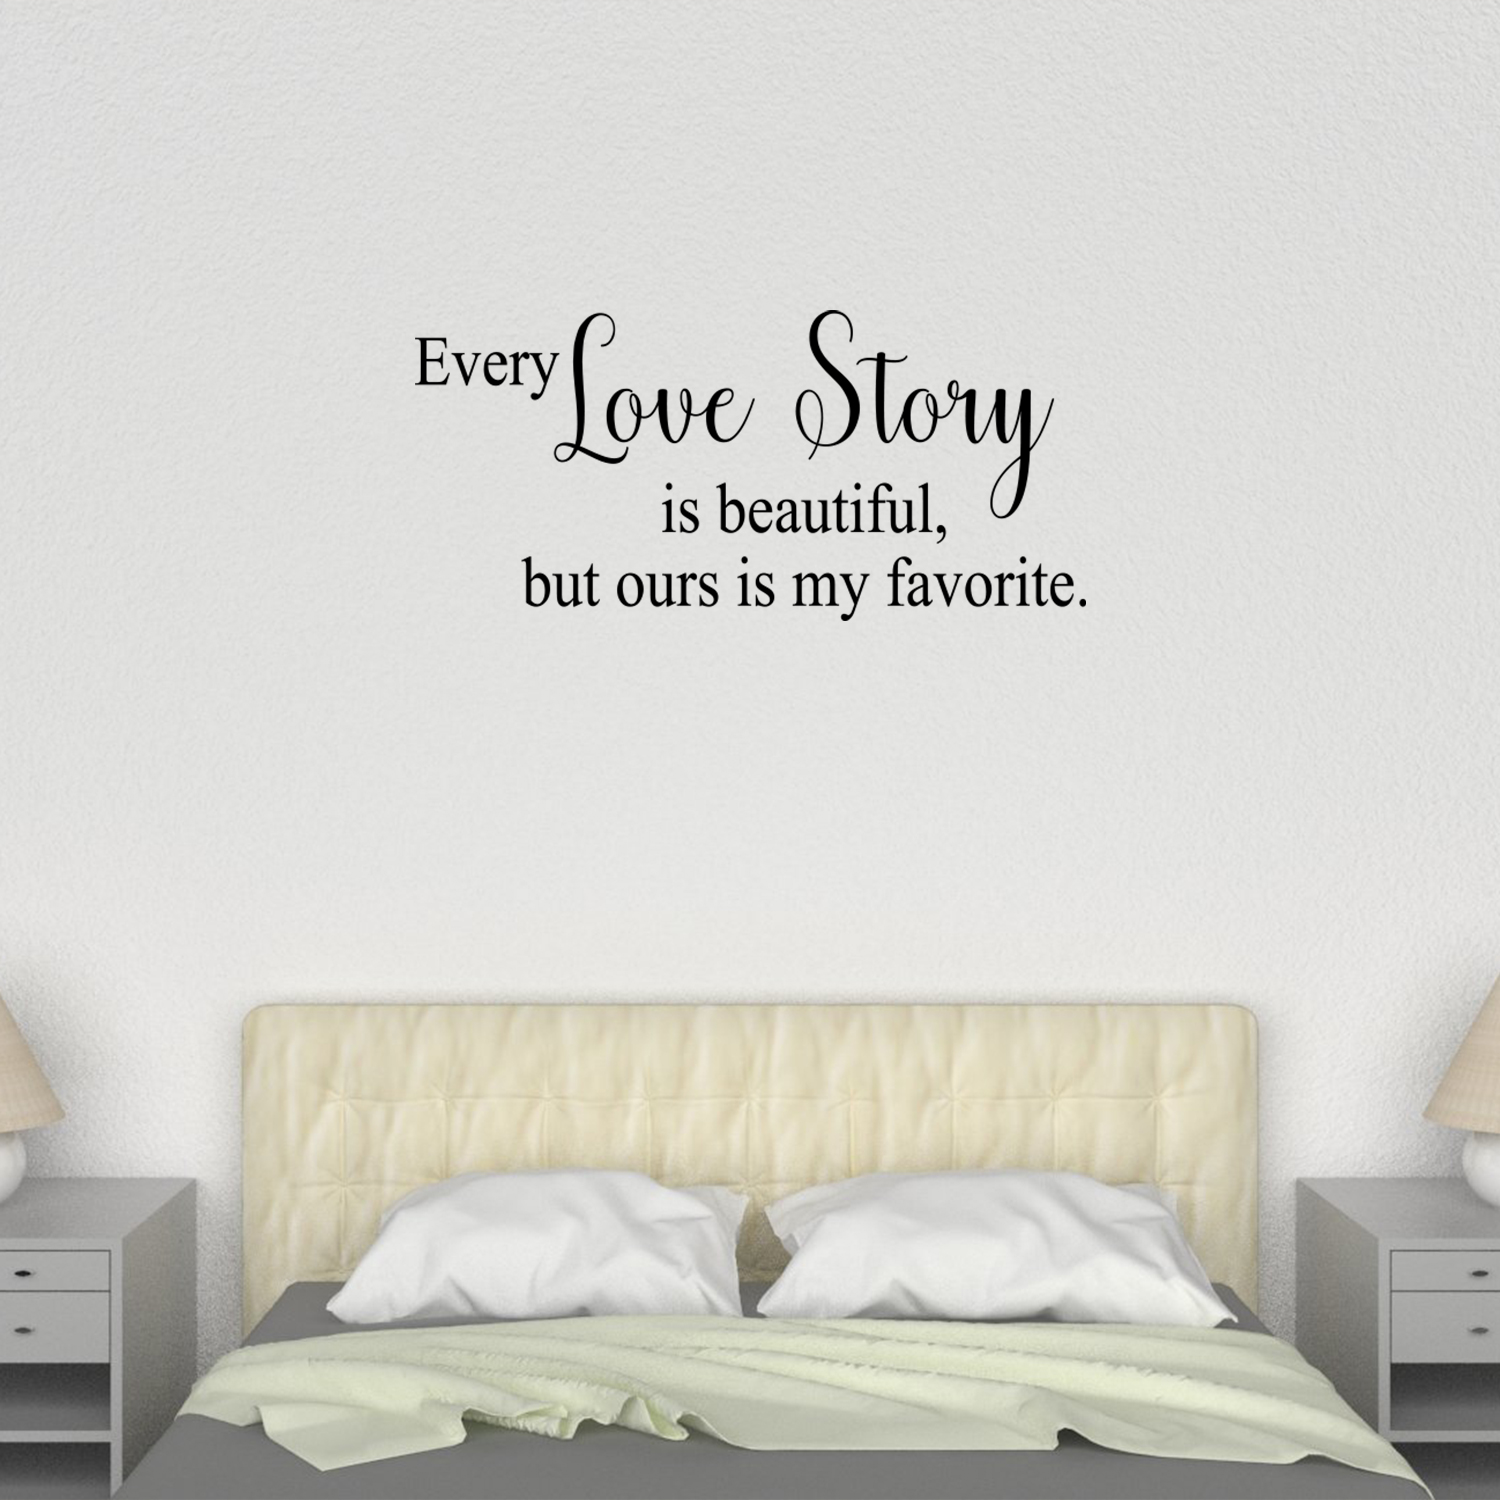 Every Love Story Is Beautiful But Ours Is My Favorite Wall Decal Sticker Mural Vinyl Art Home Decor Romantic Quotes And Sayings Dp630 Walmart Com Walmart Com